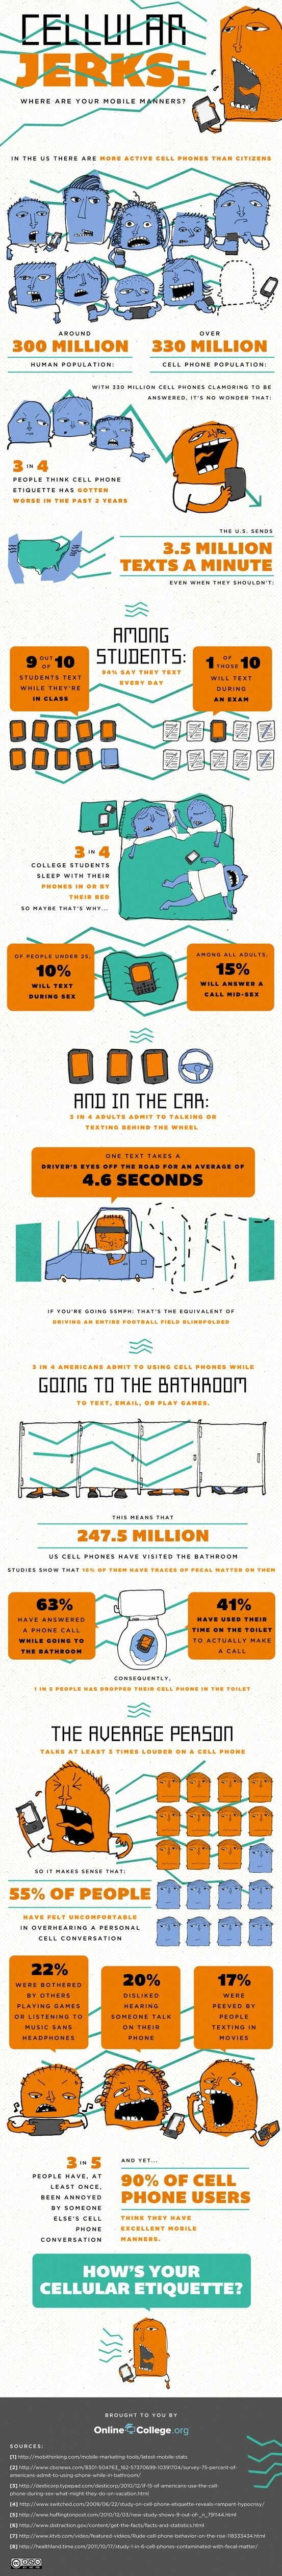 "Cellular Jerks: Where Are Your Mobile Manners? Love this infographic; I could have also pinned this to ""To Post on Classroom Wall"" because that'd be a great spot for it. Especially startling: ""One text takes a driver's eyes off the road for an average of 4.6 seconds. If you're going 55mph, that's the equivalent of driving an entire football field blindfolded."""